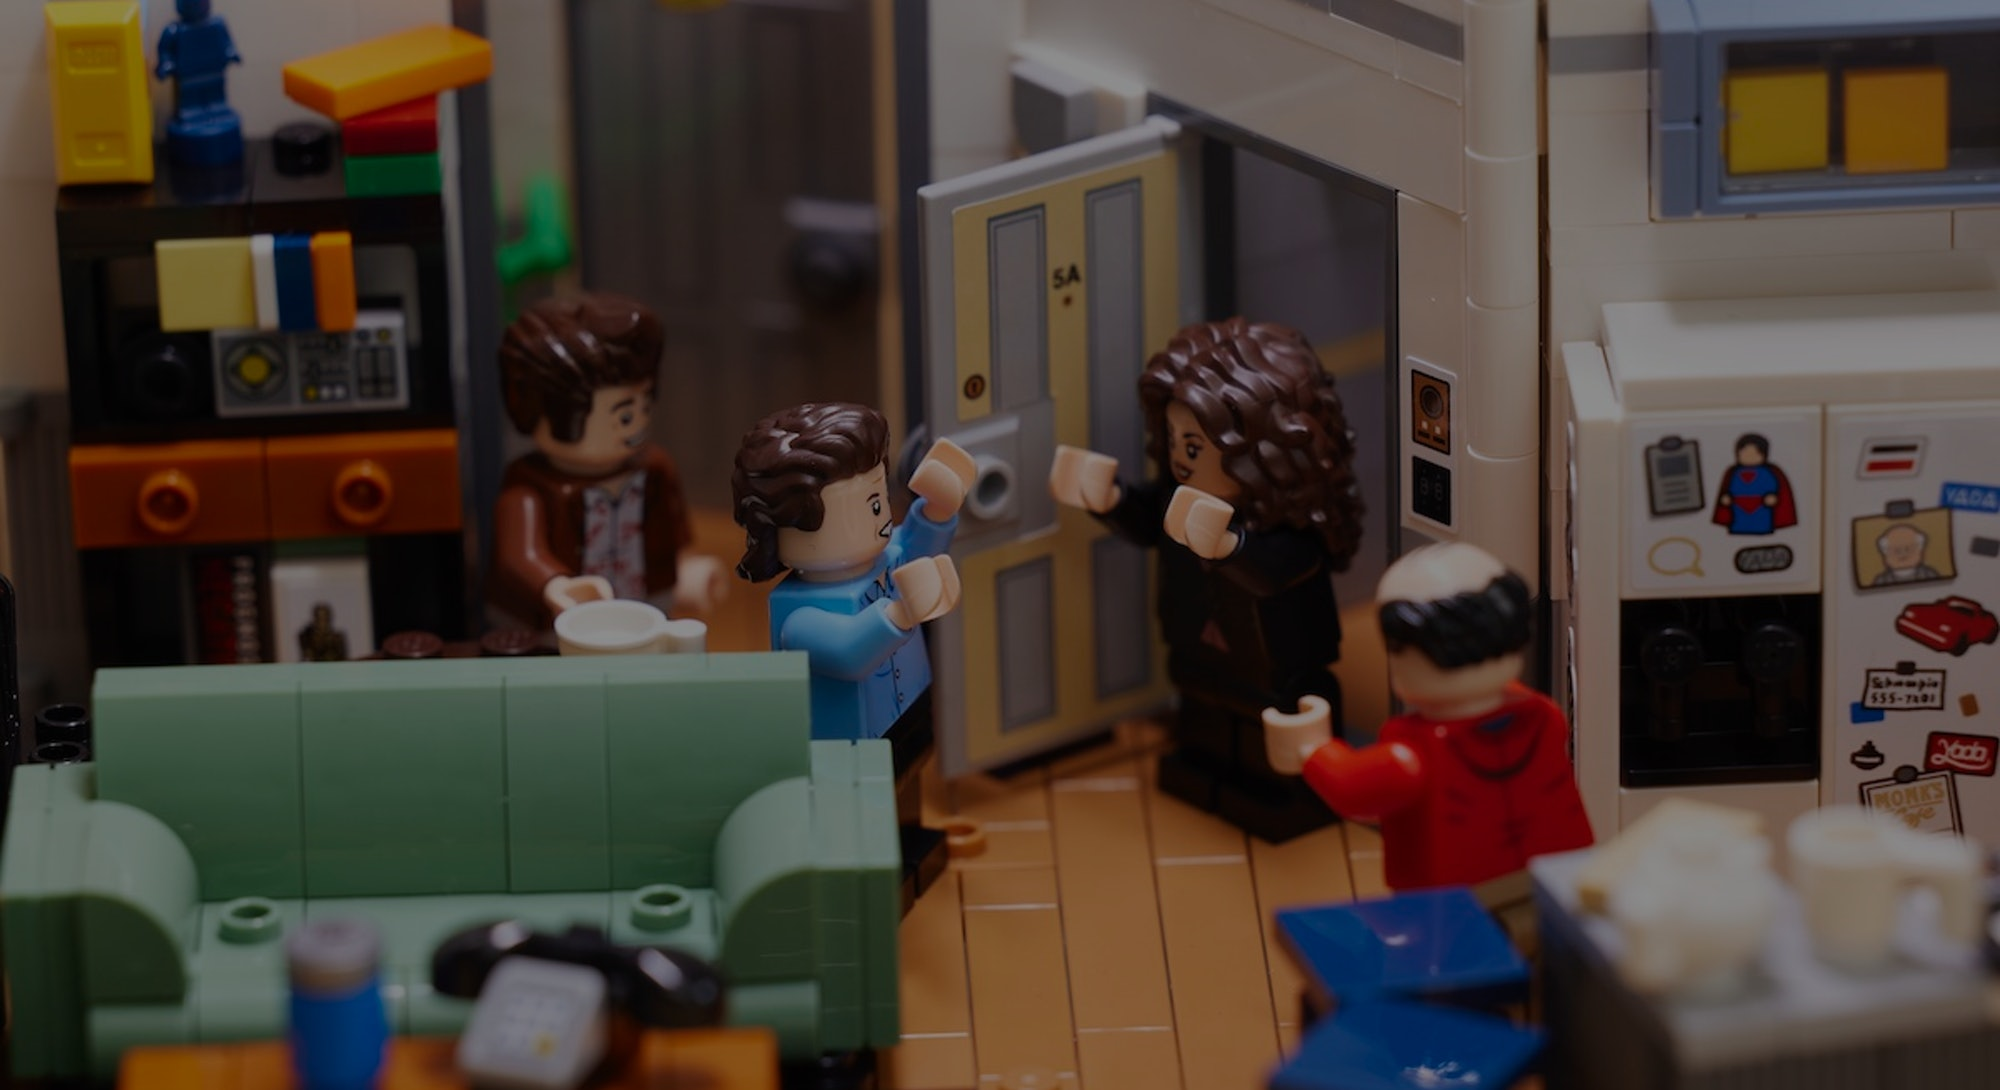 Lego is releasing a kit based on Jerry's apartment in 'Seinfeld'.